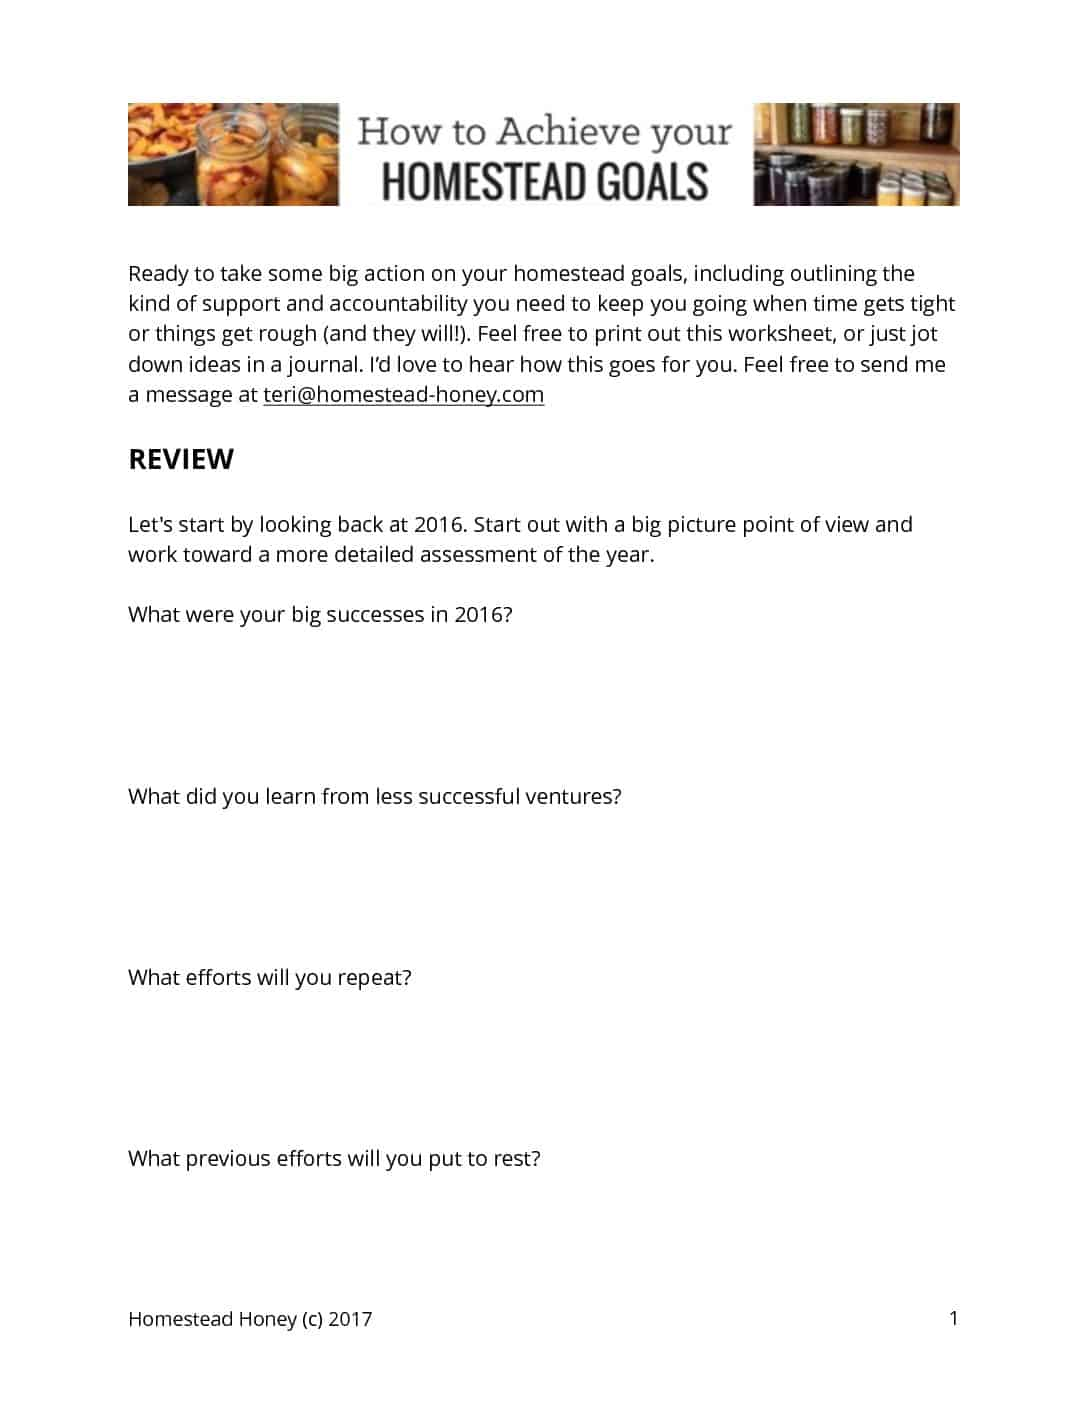 How To Achieve Your Homesteading Goals In